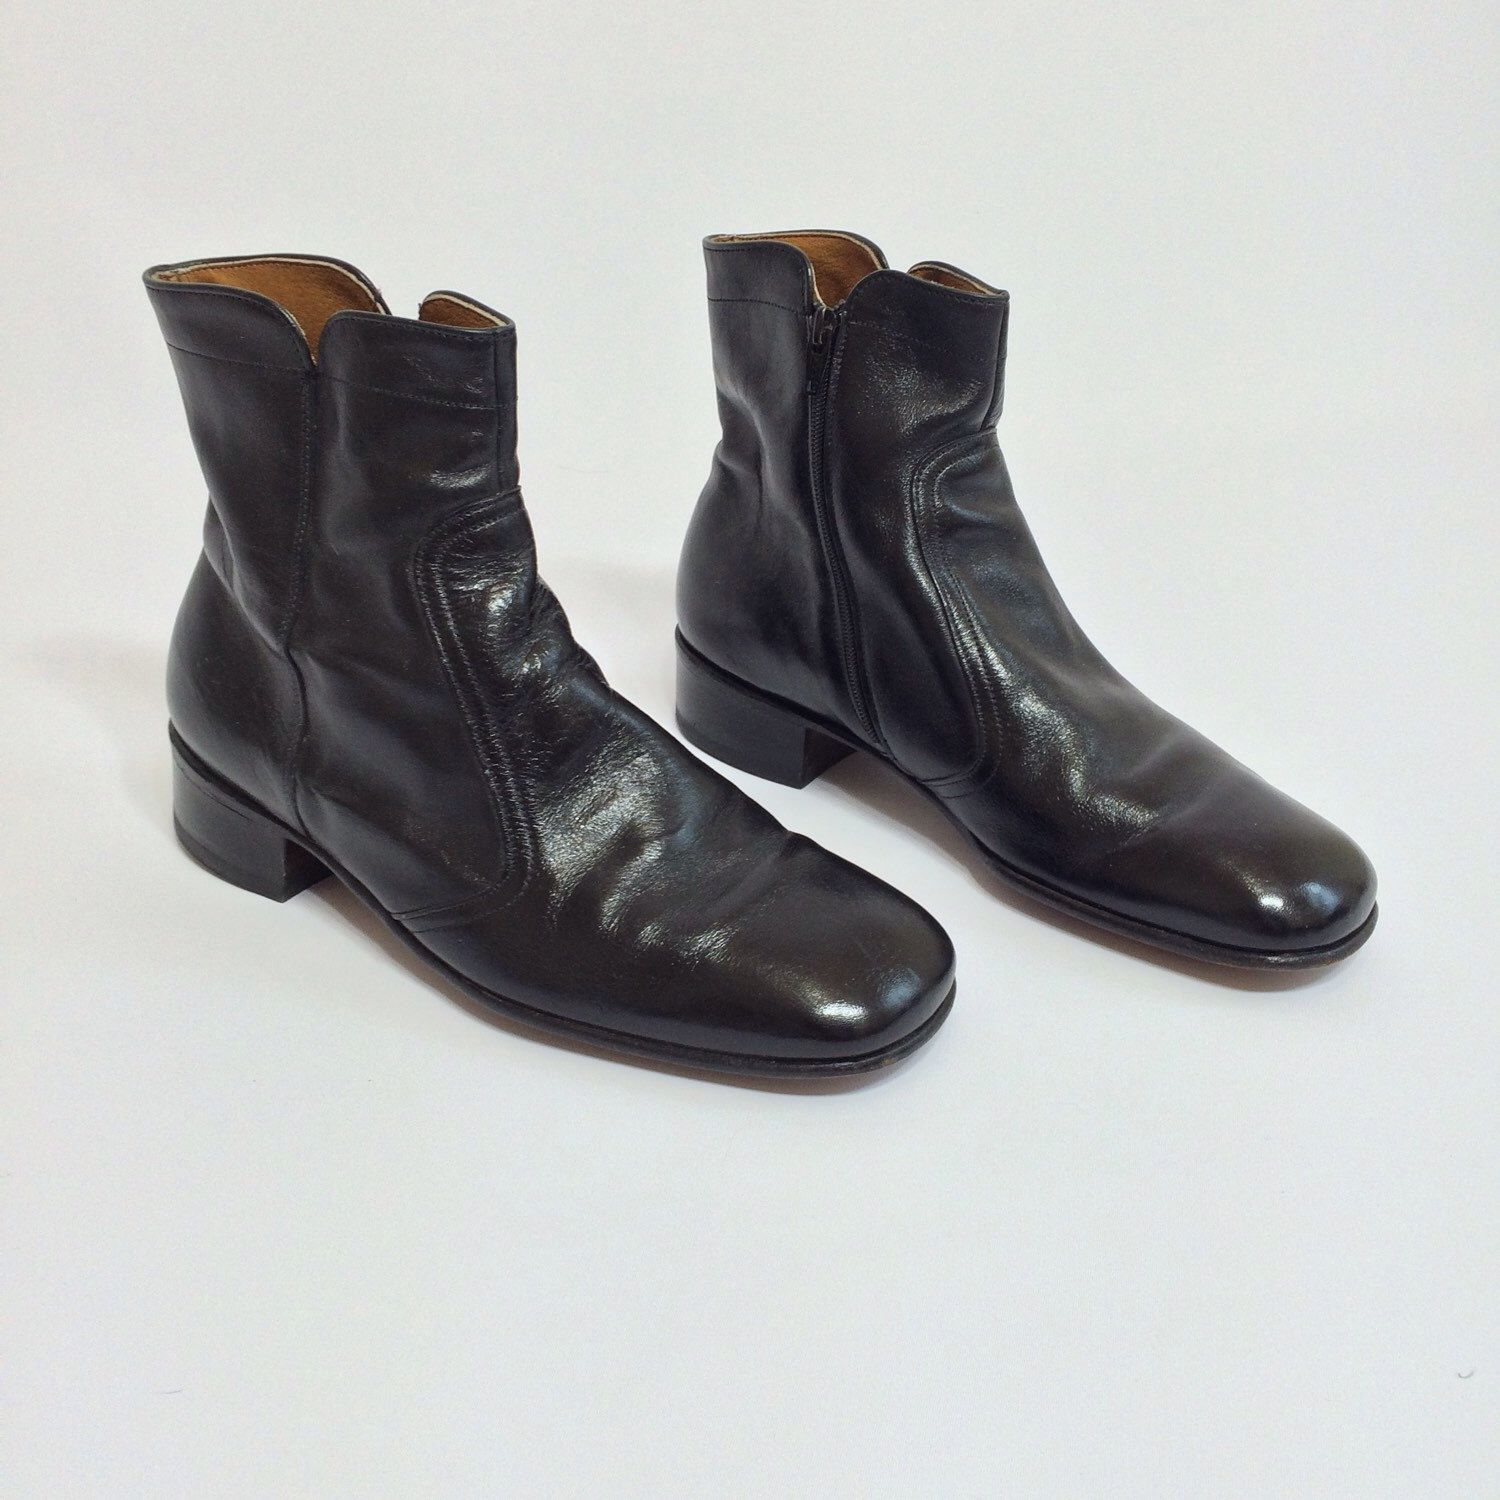 19e4986bf58f 70s Black Leather Ankle Boots Mod Beatle Boot Zip Up Motorcycle Boots Mens  Size 11 Dress